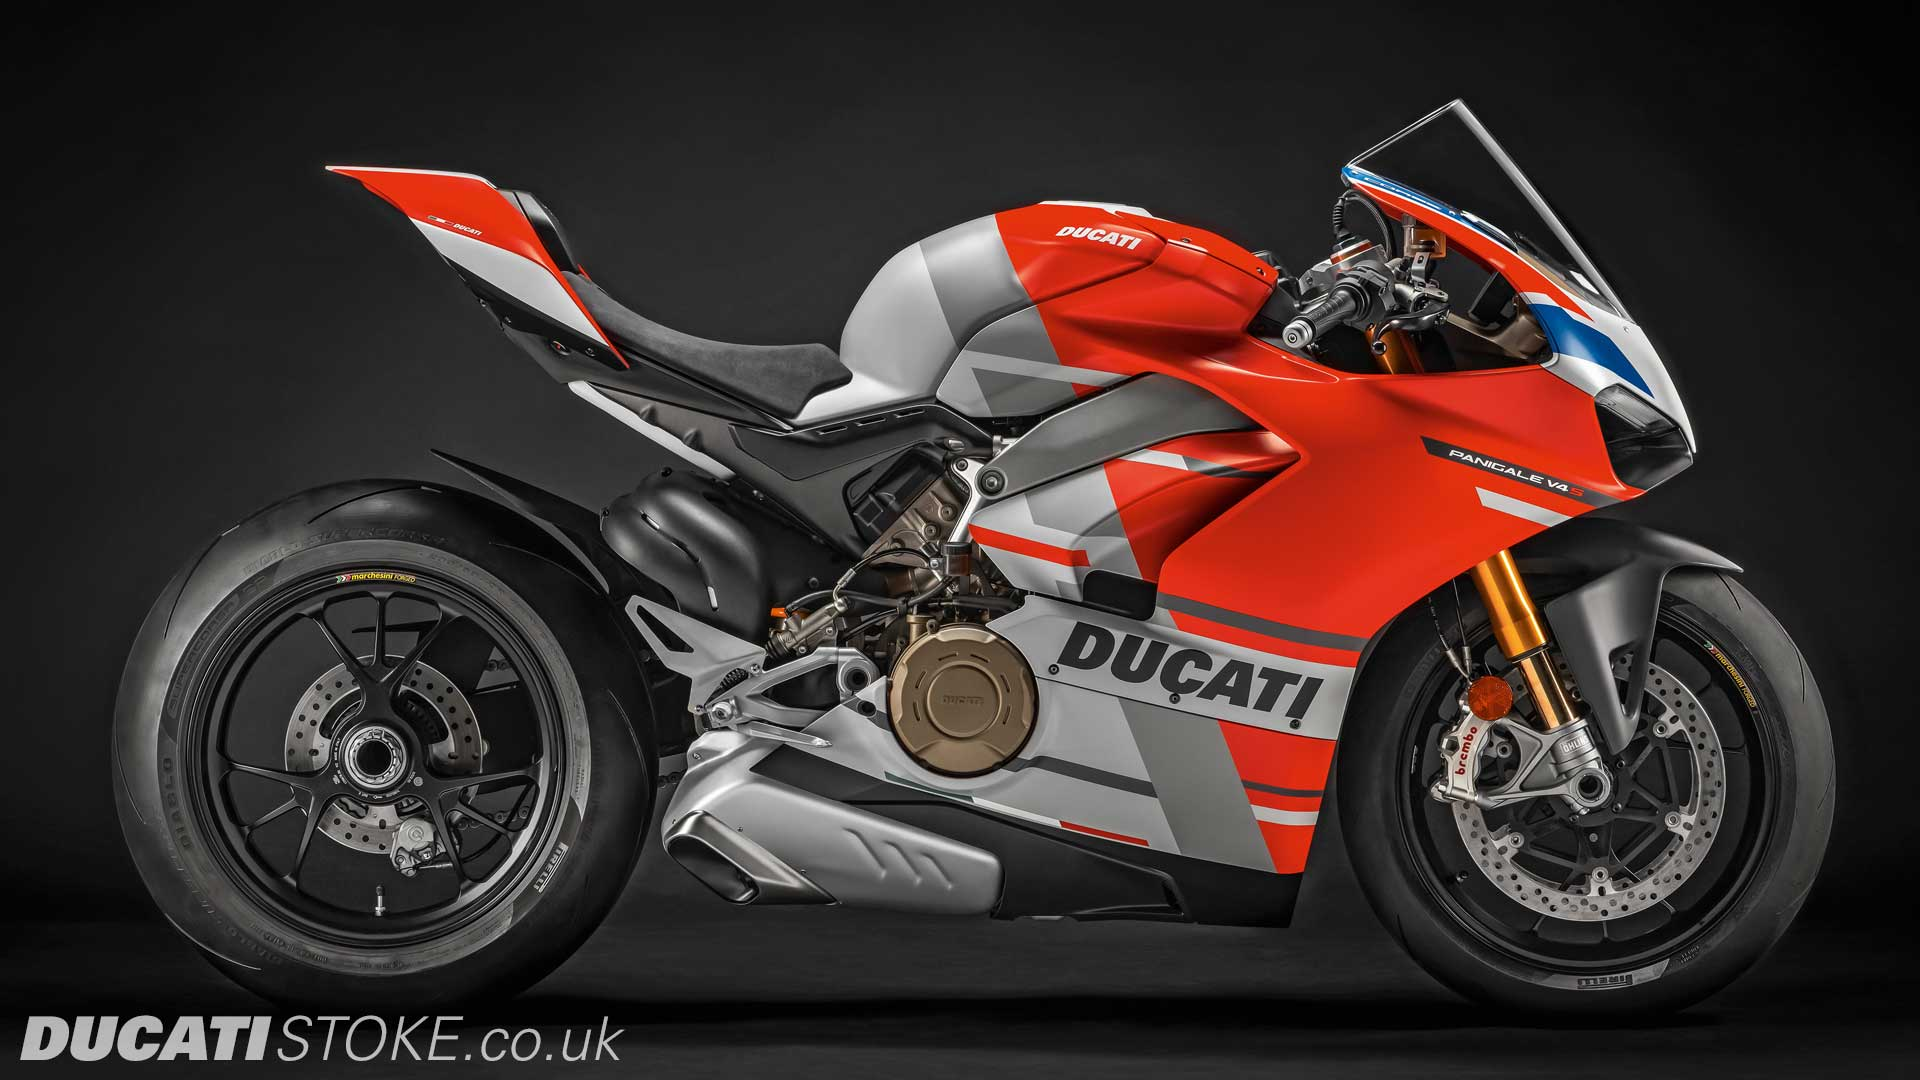 2019 Ducati Panigale V4 S Corse for sale at Ducati Stoke, Staffordshire, Scotland